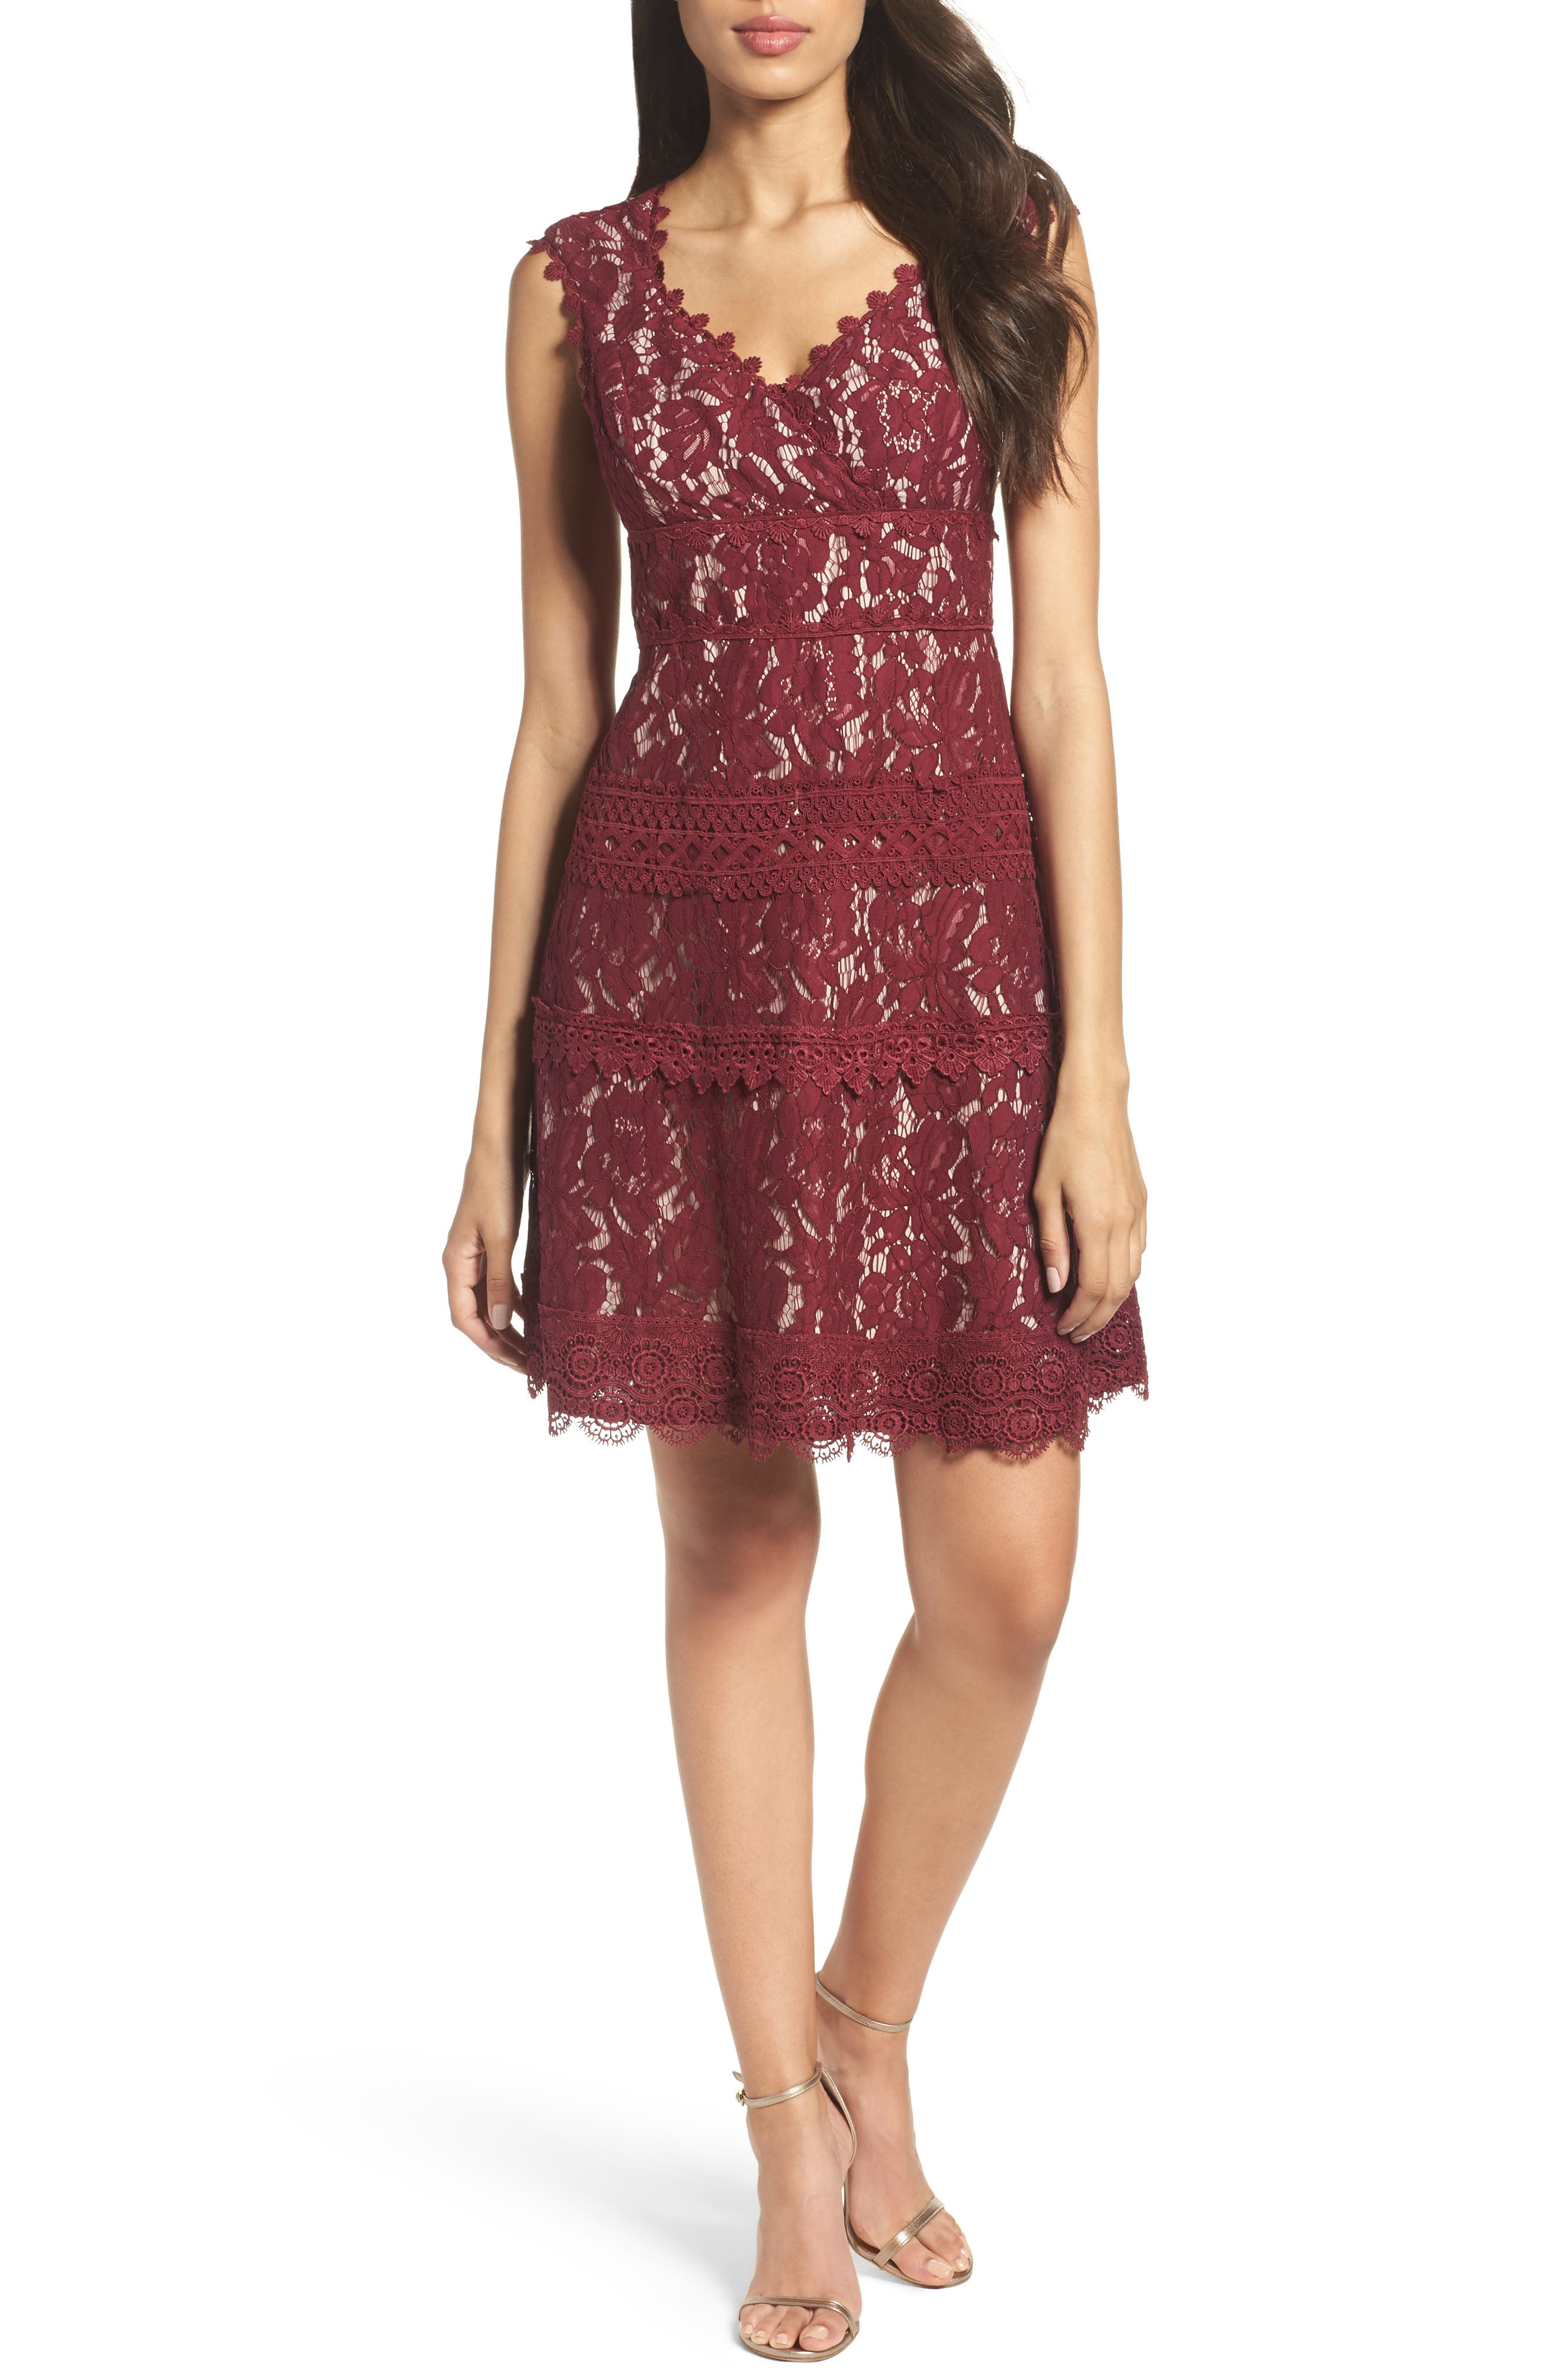 Adrianna Papell Cynthia Lace Fit & Flare Dress